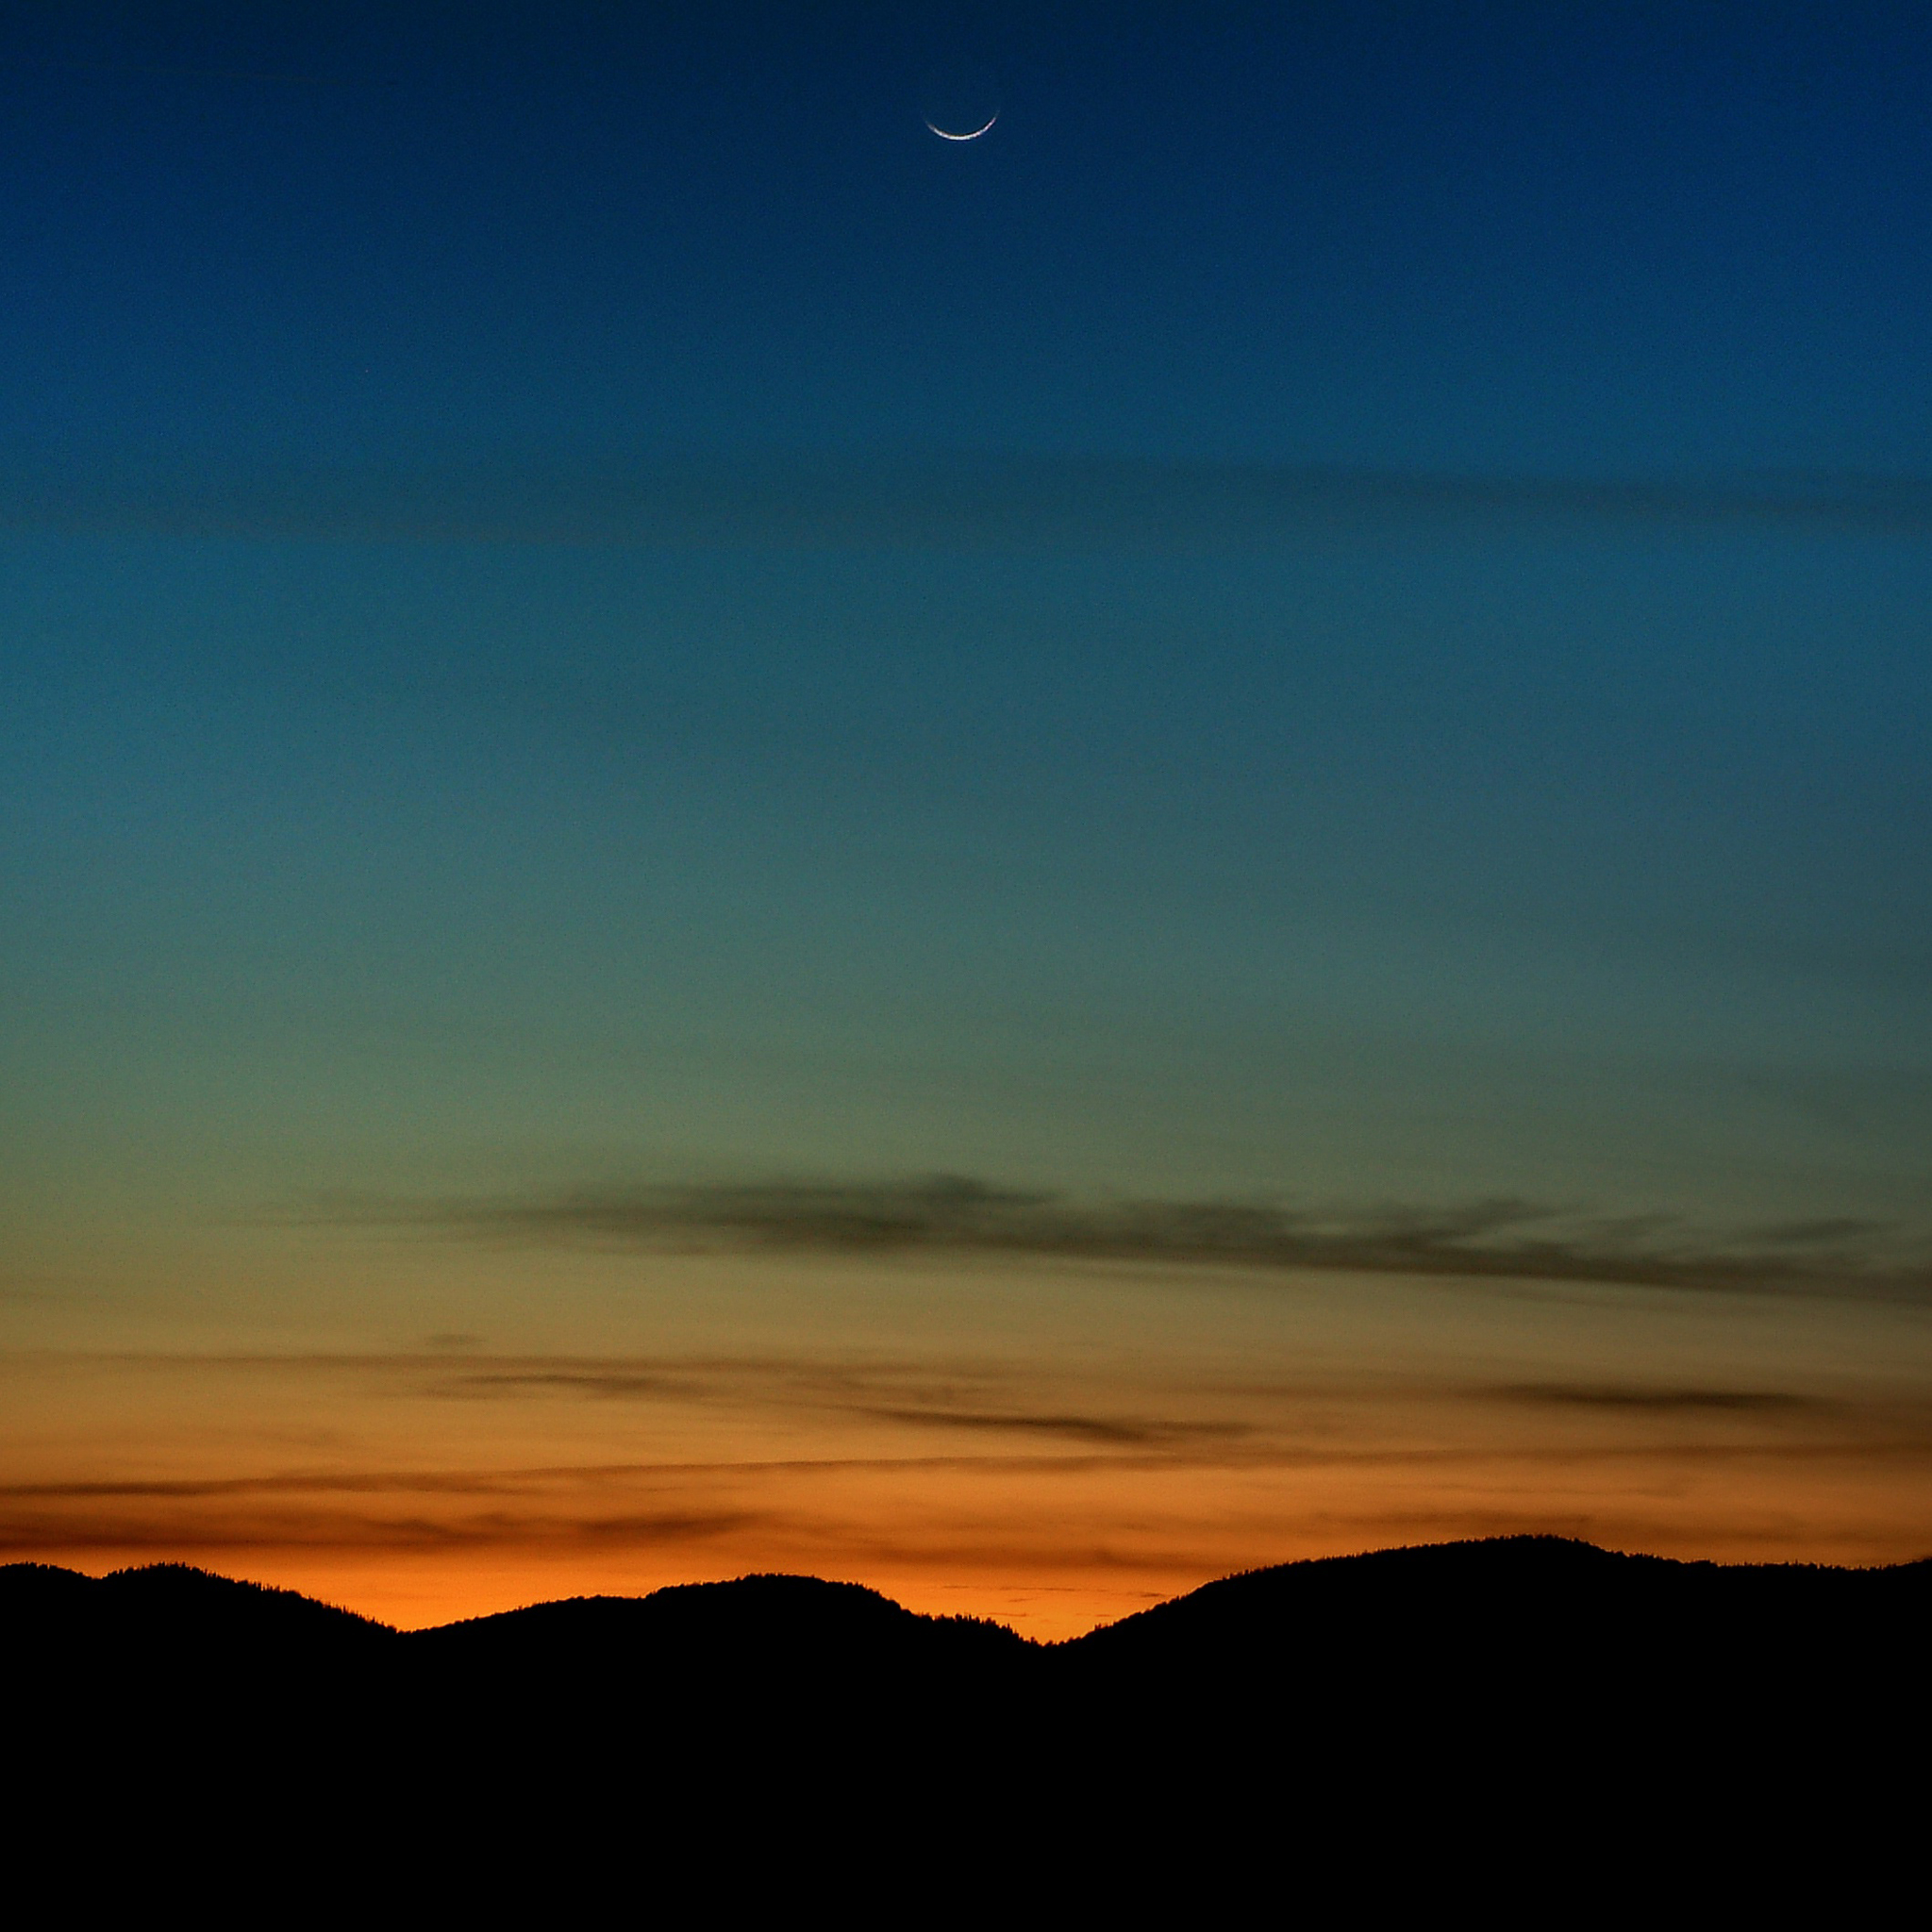 tahoe sunsets - under a new spring moon ipad wallpaper